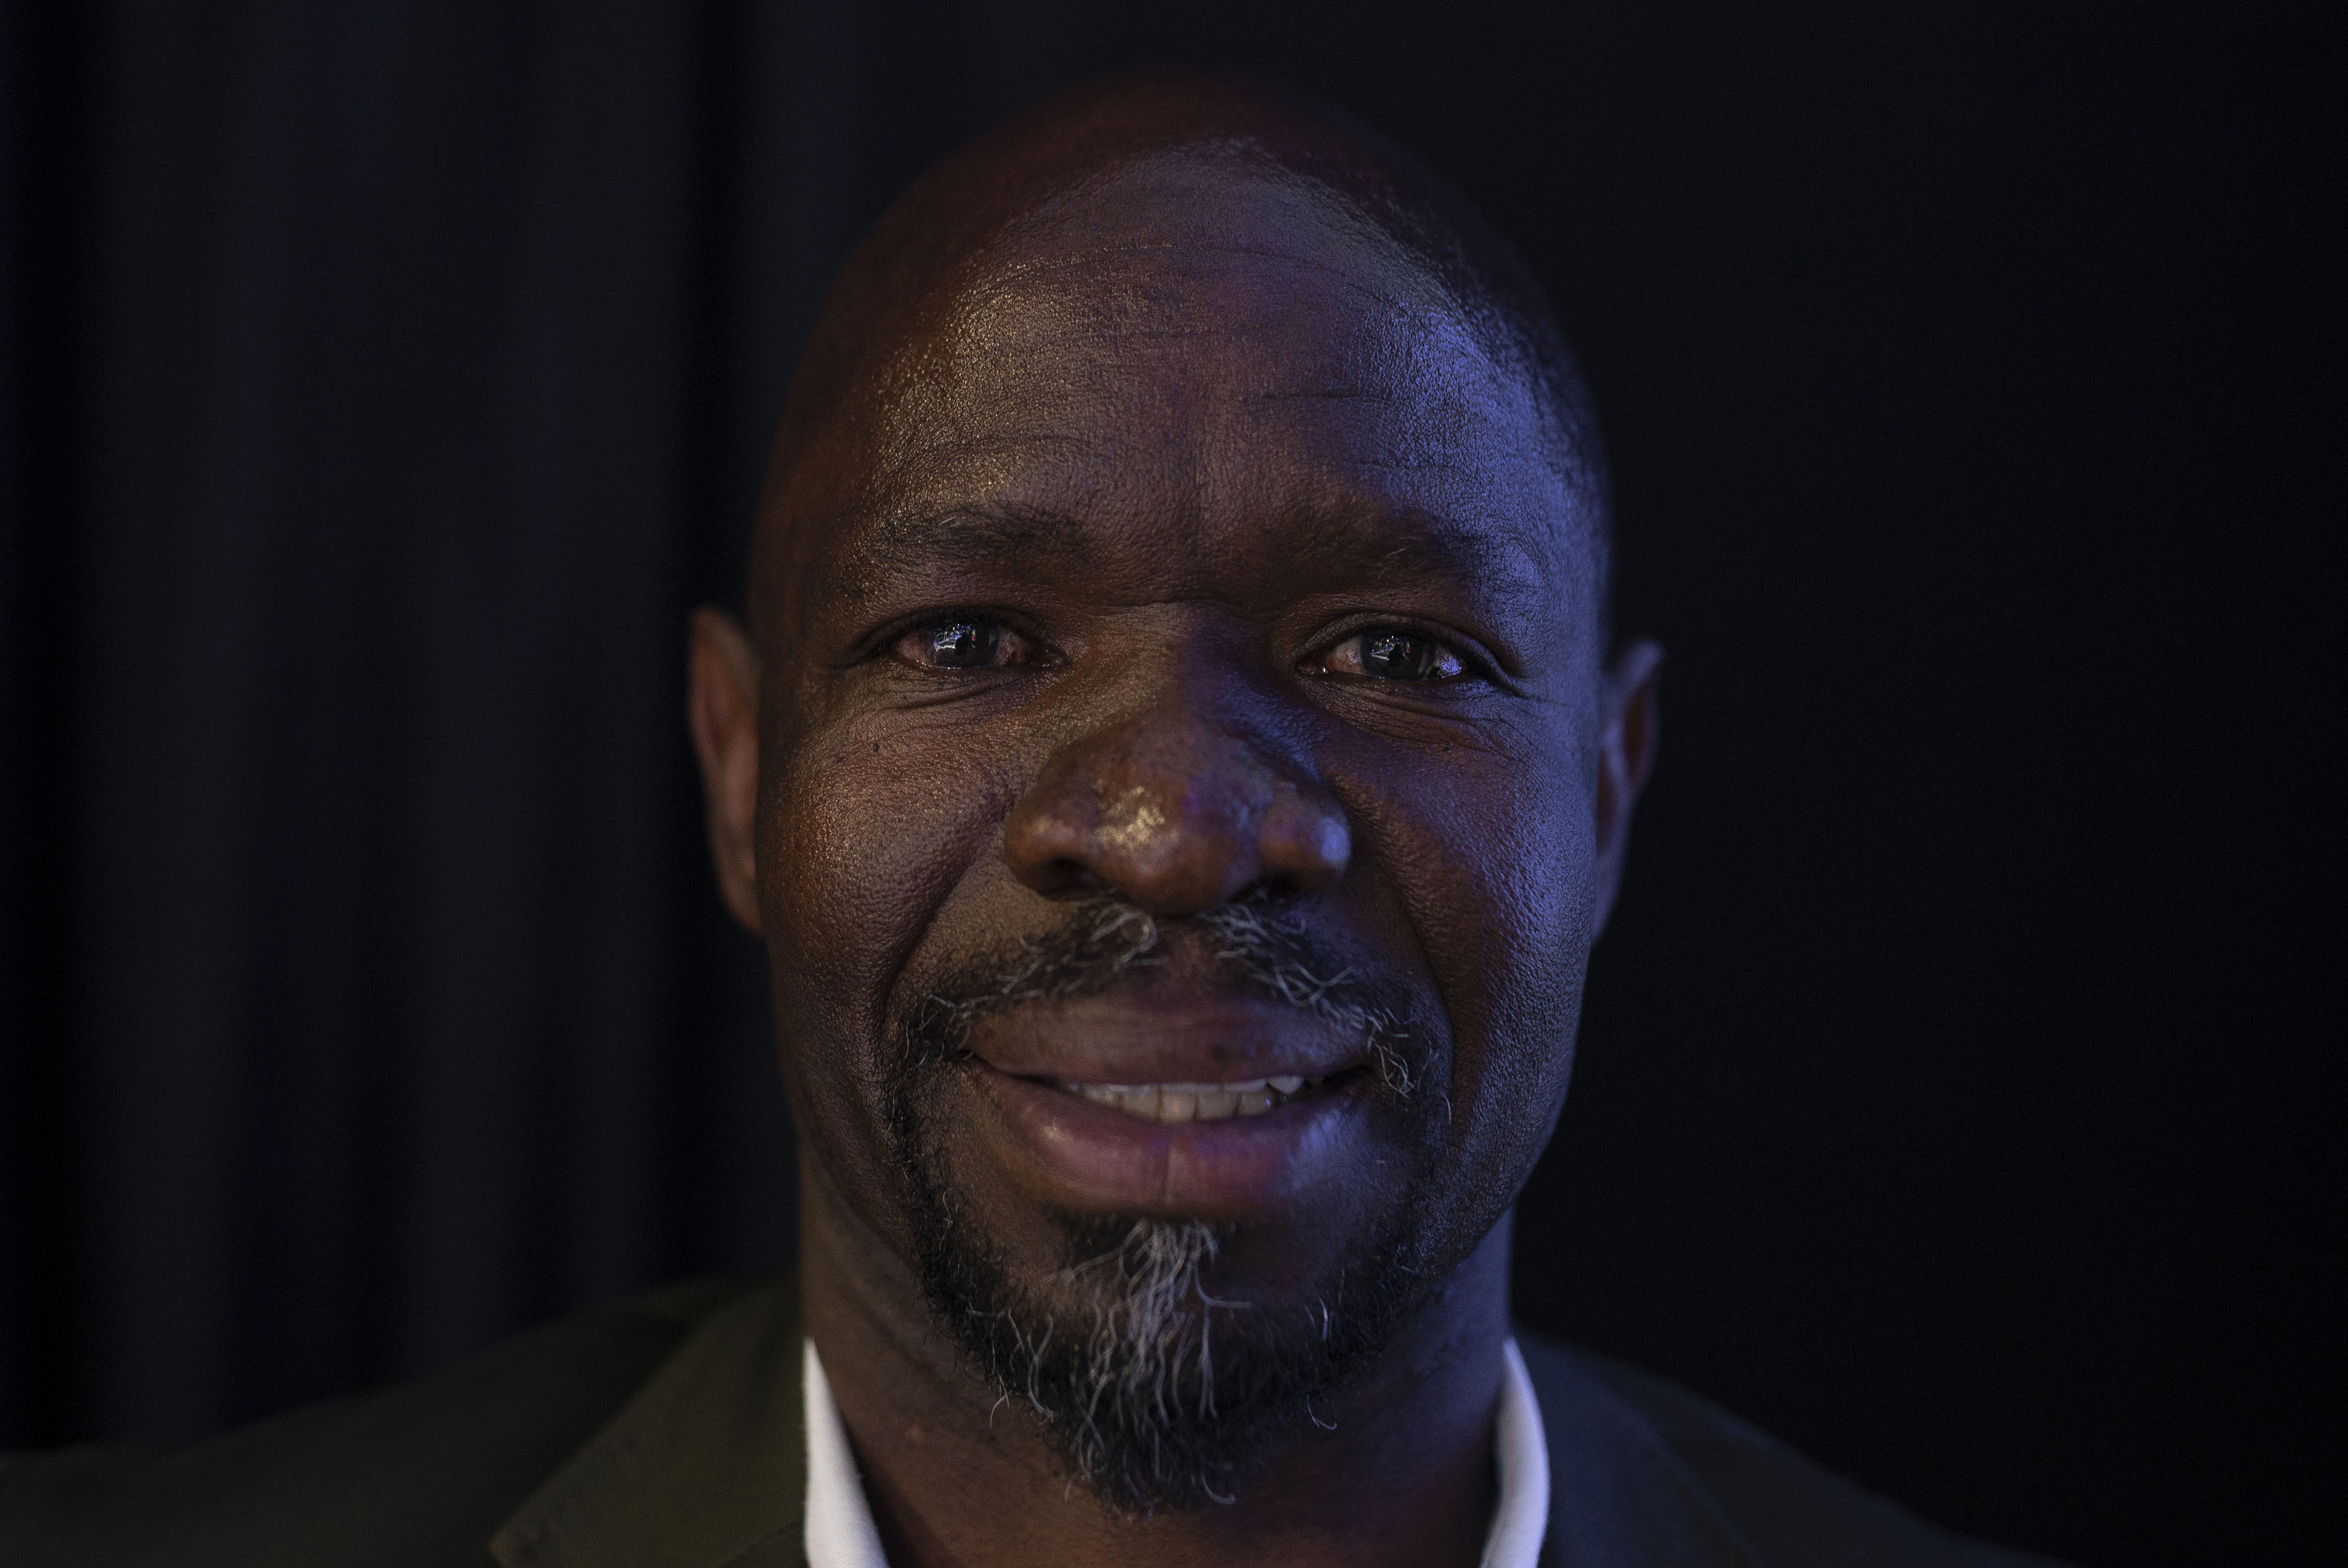 8 October 2018: Steve Komphela, coach of Bloemfontein Celtic, talks about how he survived his tumultuous tenure at Kaizer Chiefs.